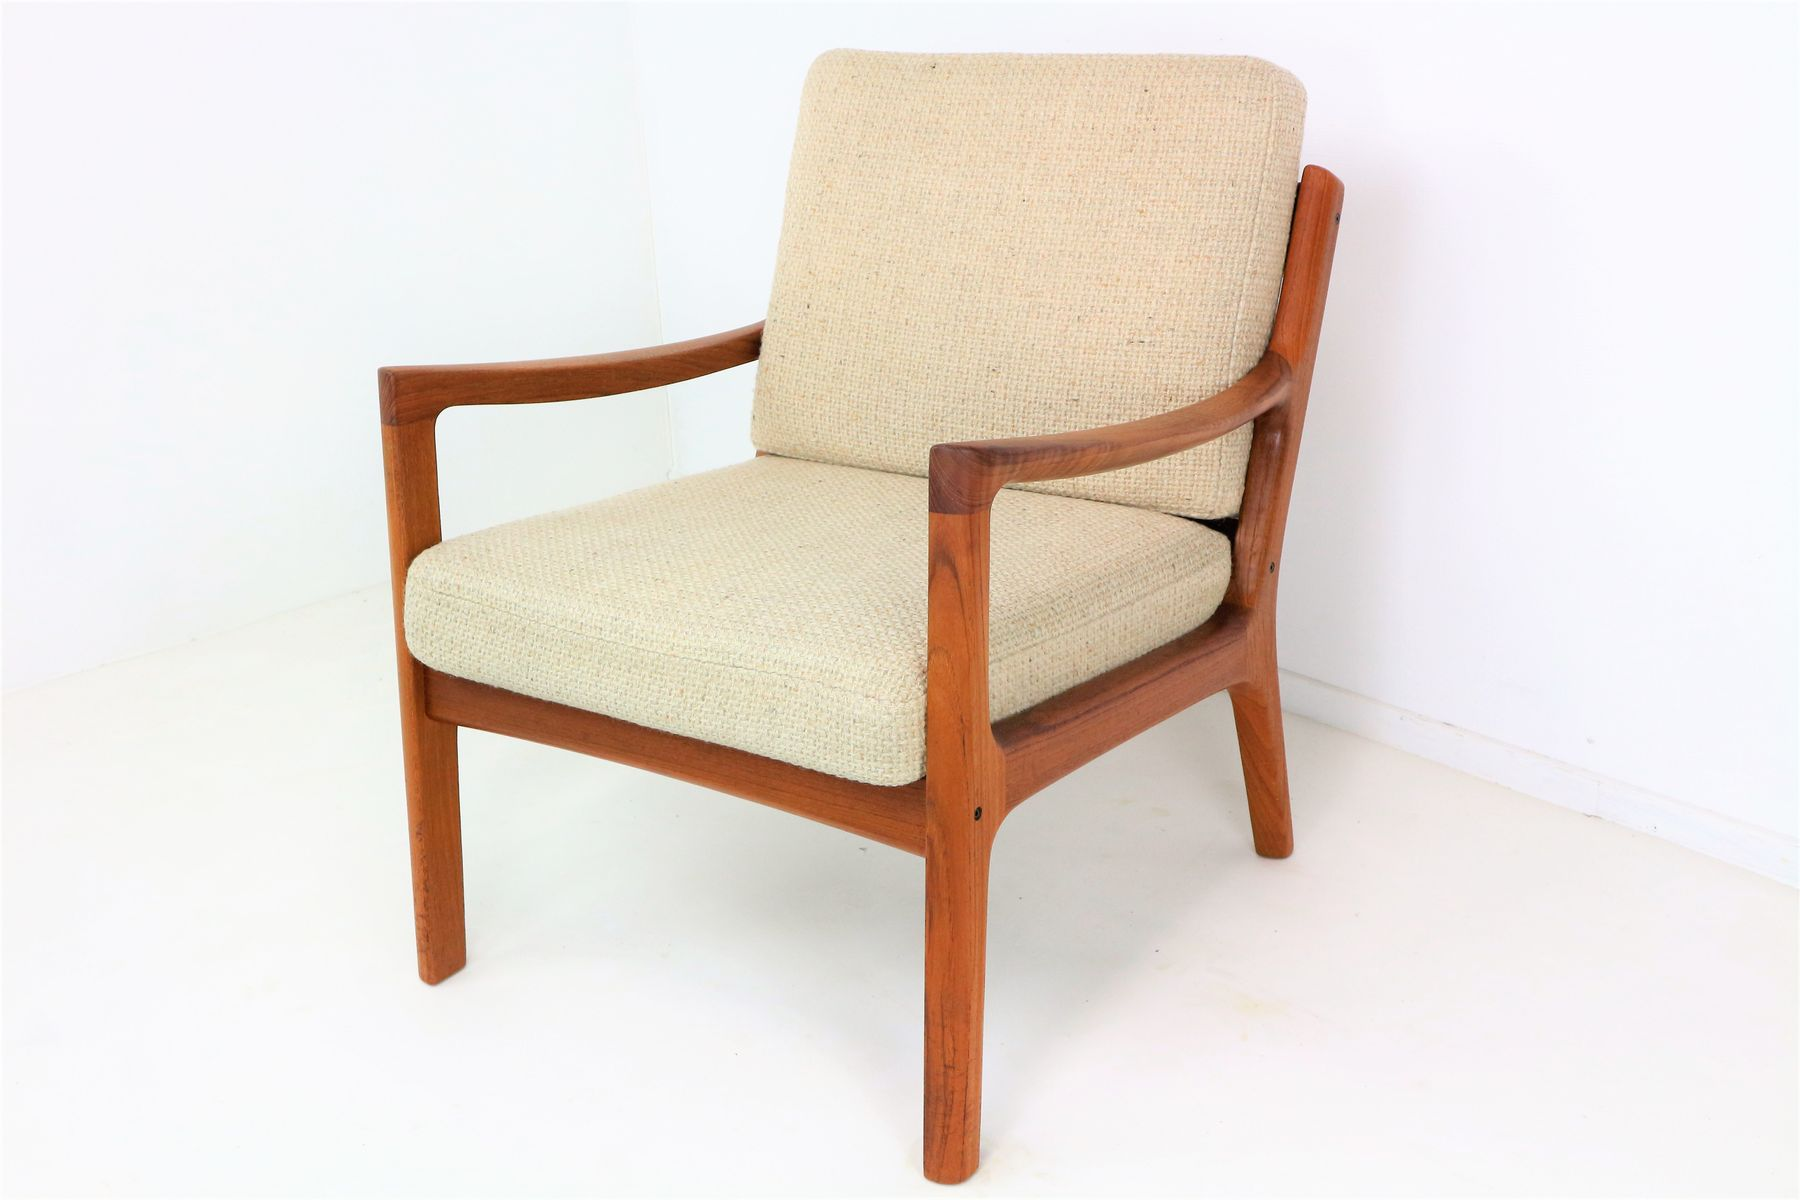 Vintage Senator Lounge Chair in Teak by Ole Wanscher for France